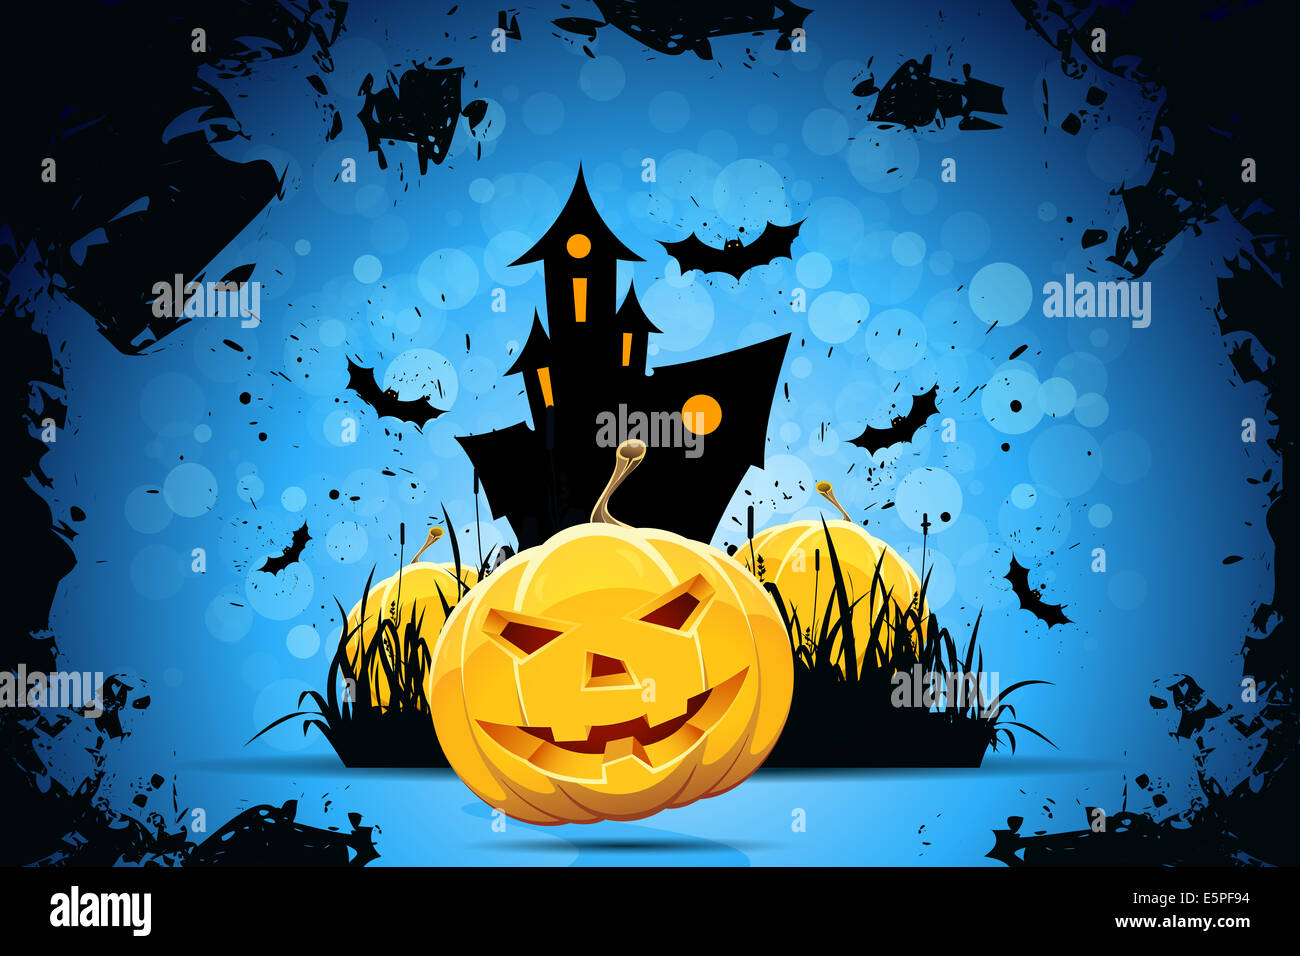 Grunge Halloween Party Background with Pampkins, House in Grass ...